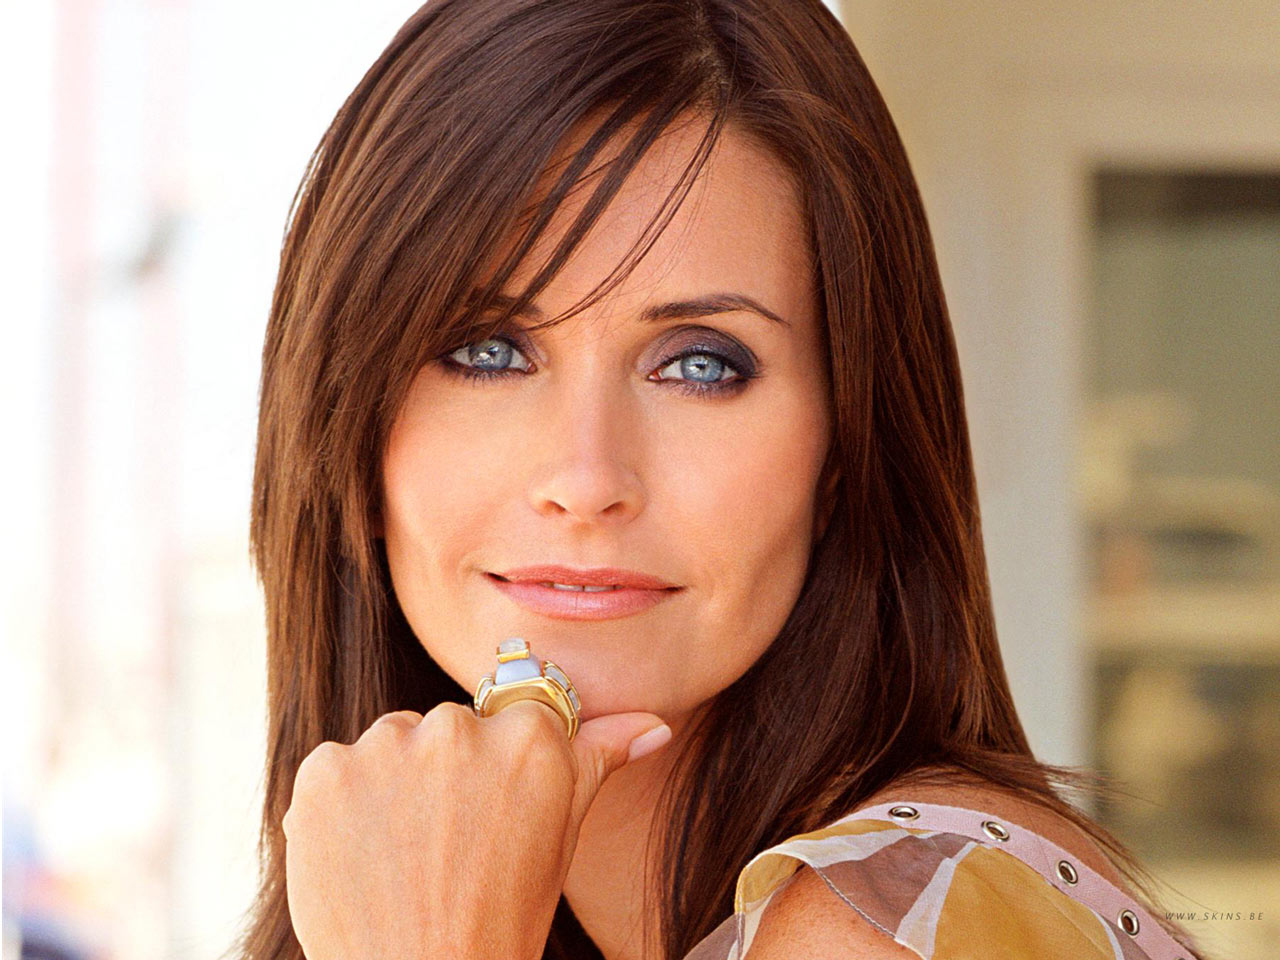 http://4.bp.blogspot.com/-4tm2jLn9onU/Th95O6F8vBI/AAAAAAAAAKE/uUueErkcJeQ/s1600/celebritati_courteney-cox1.jpg